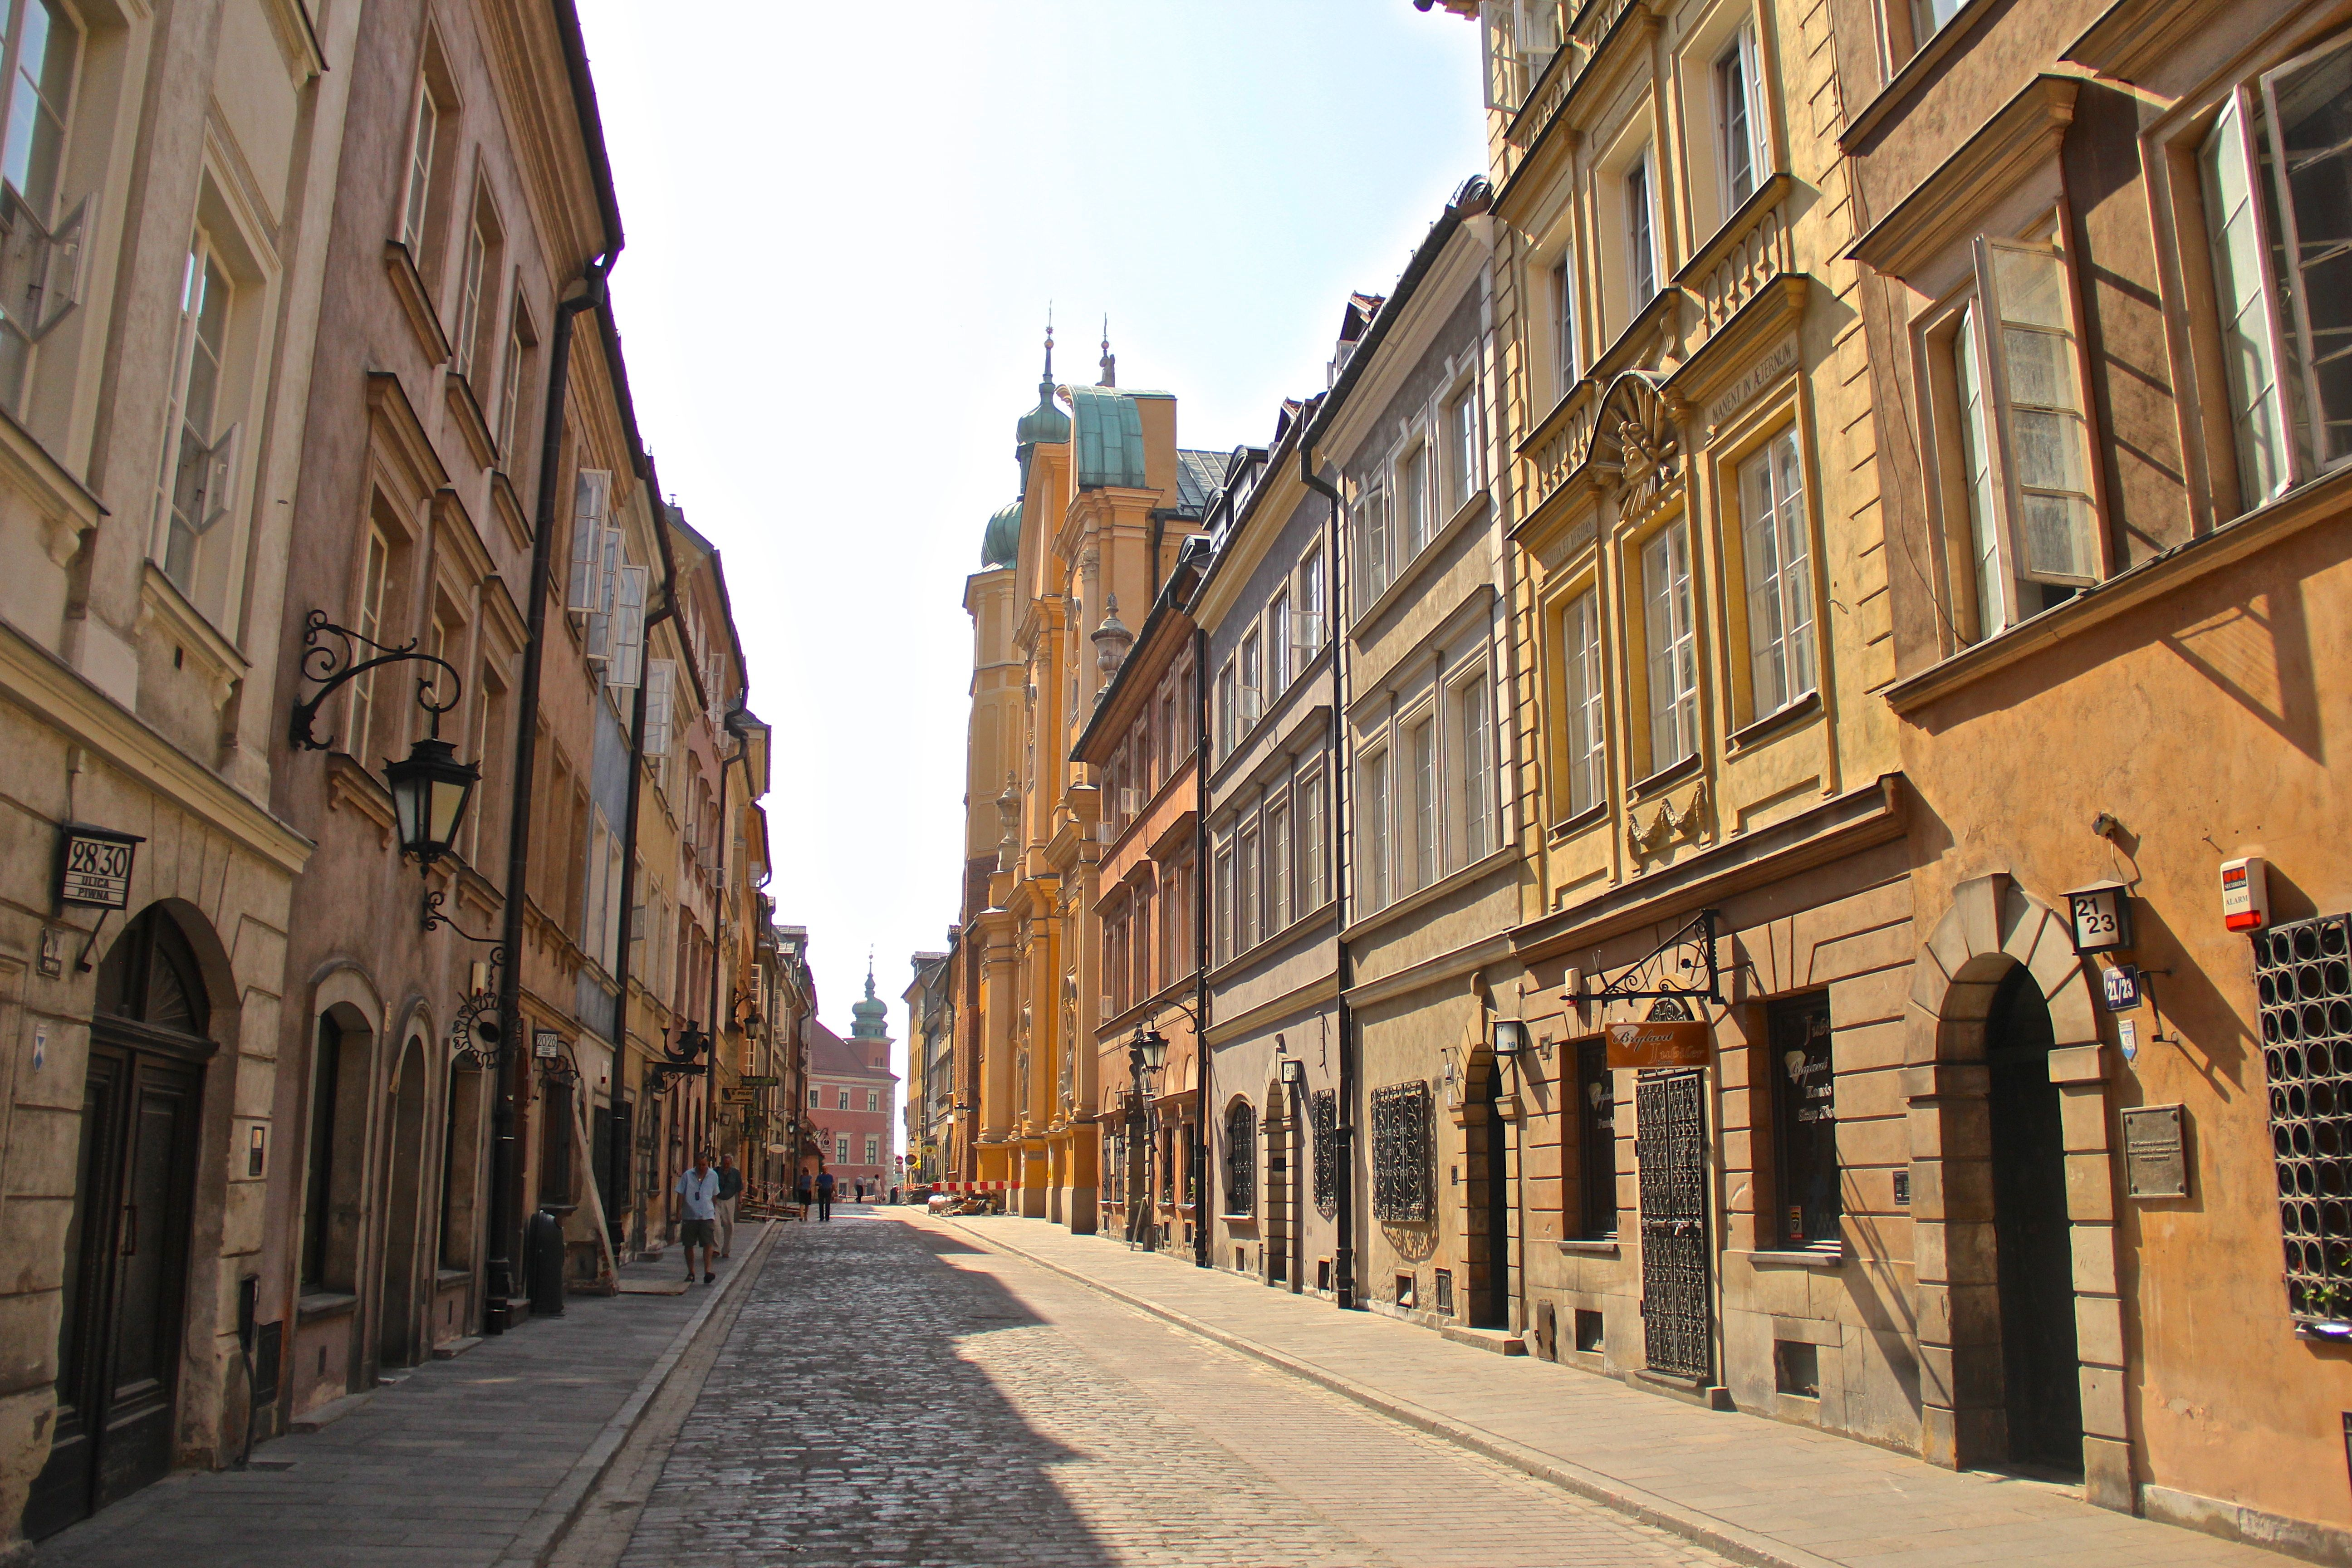 WaRsAw OLd tOwN  SWEENEY